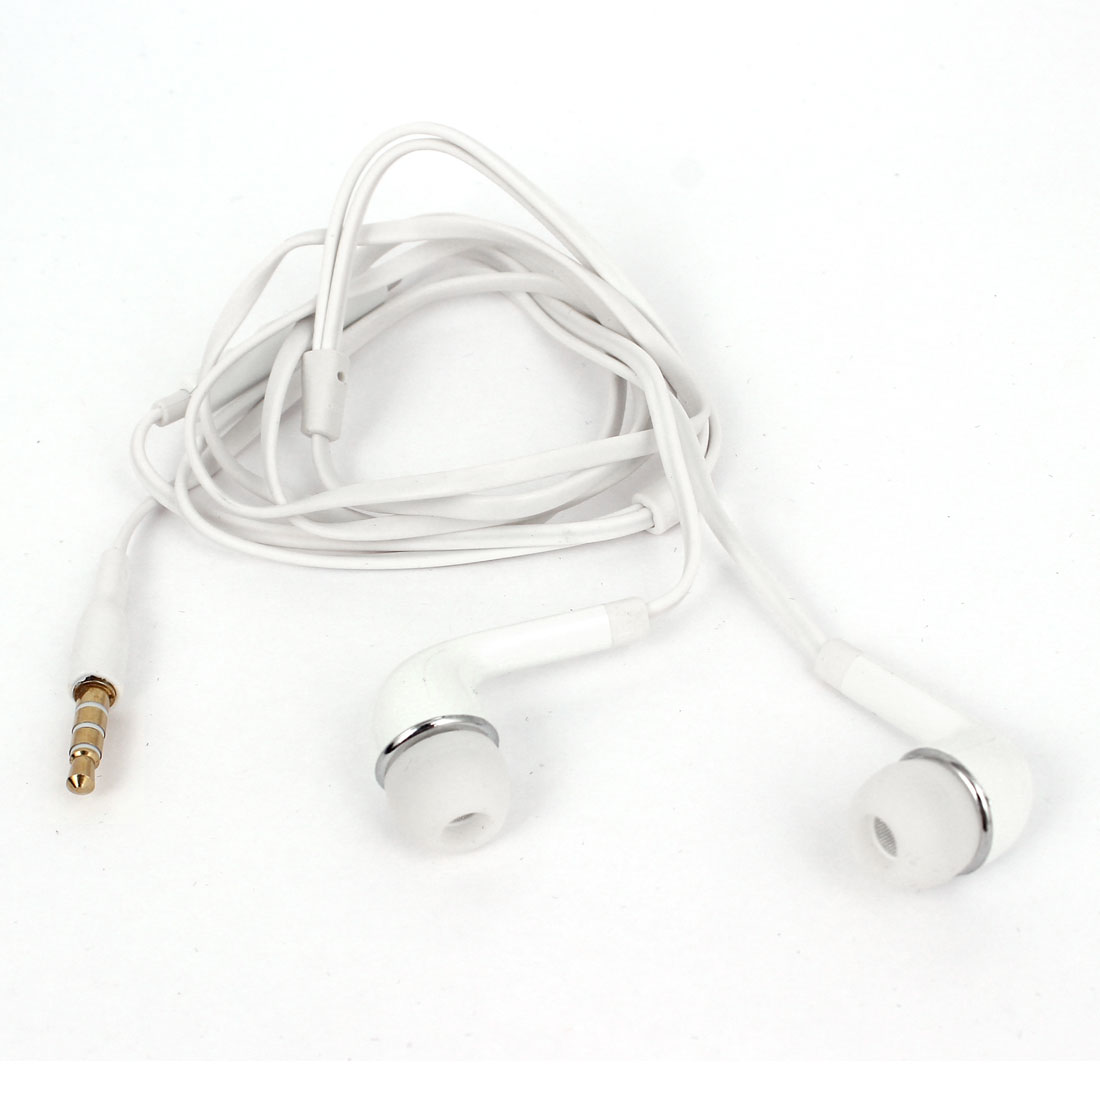 3.5mm Port In Ear Headset Earbuds Earphone White for Cellphone MP3 Mp4 DVD